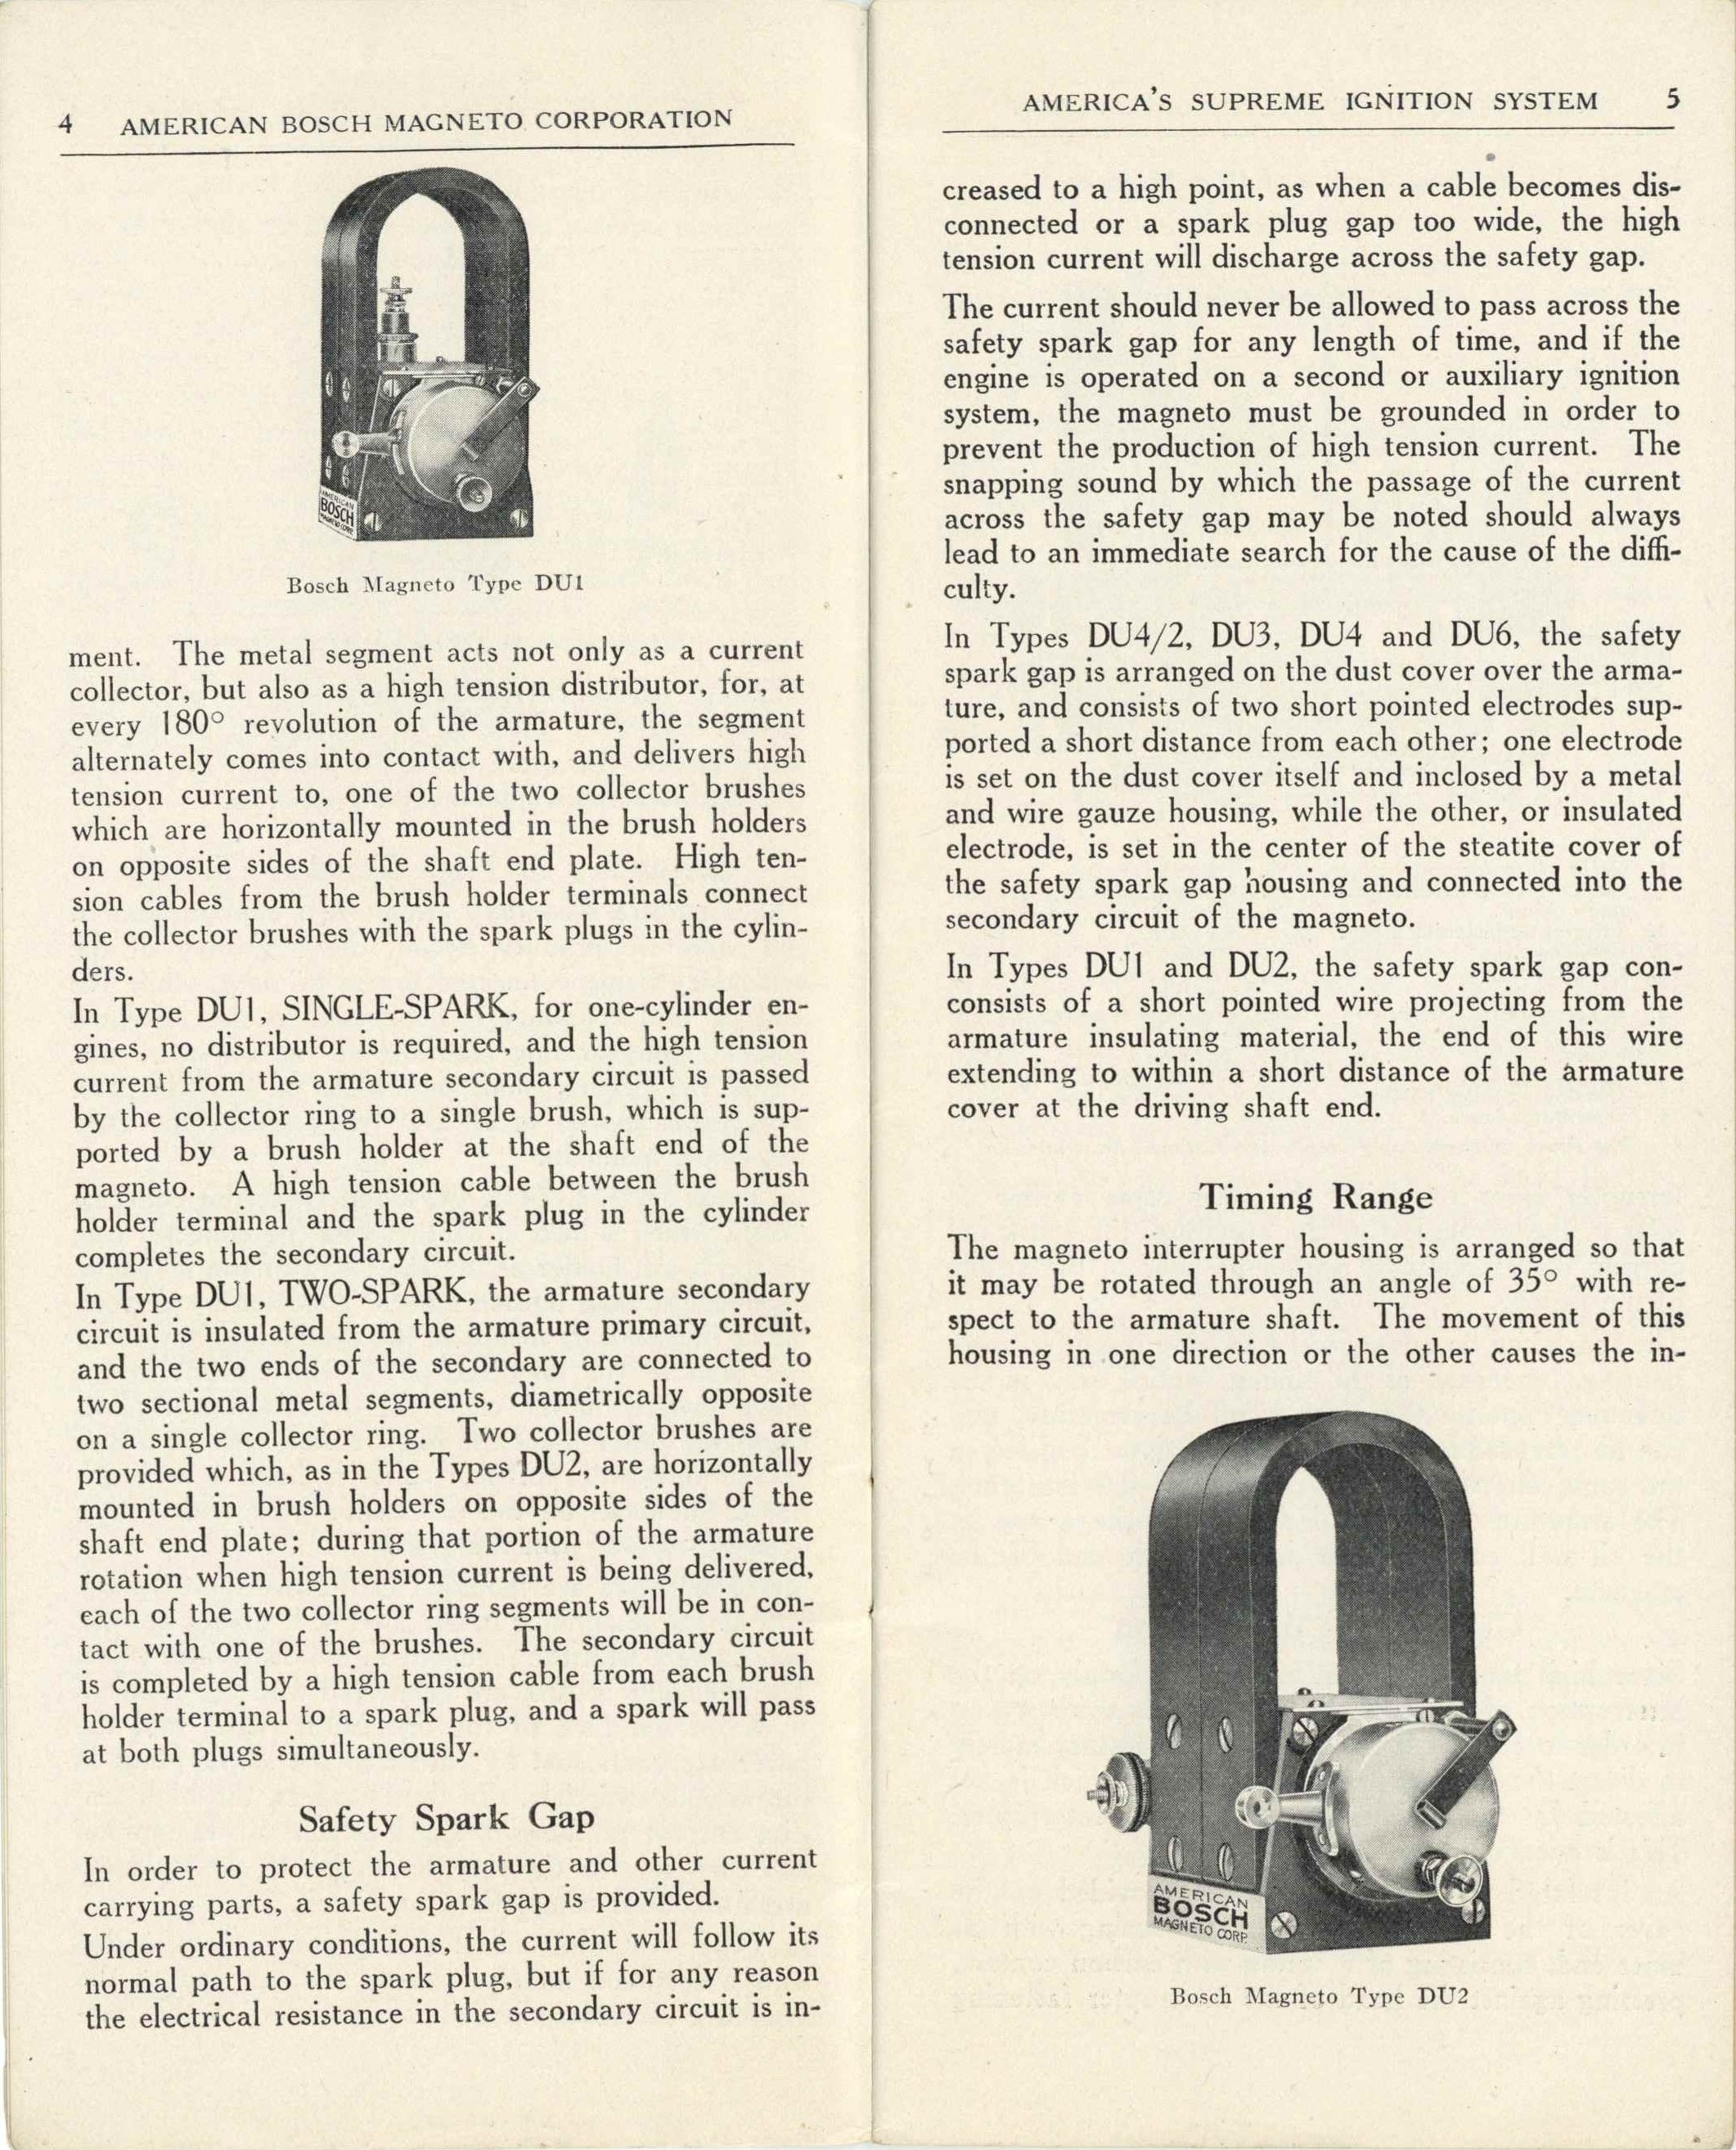 1919 AMERICAN BOSCH MAGNET CORP'N TYPE DU MAGNETO for GASOLINE